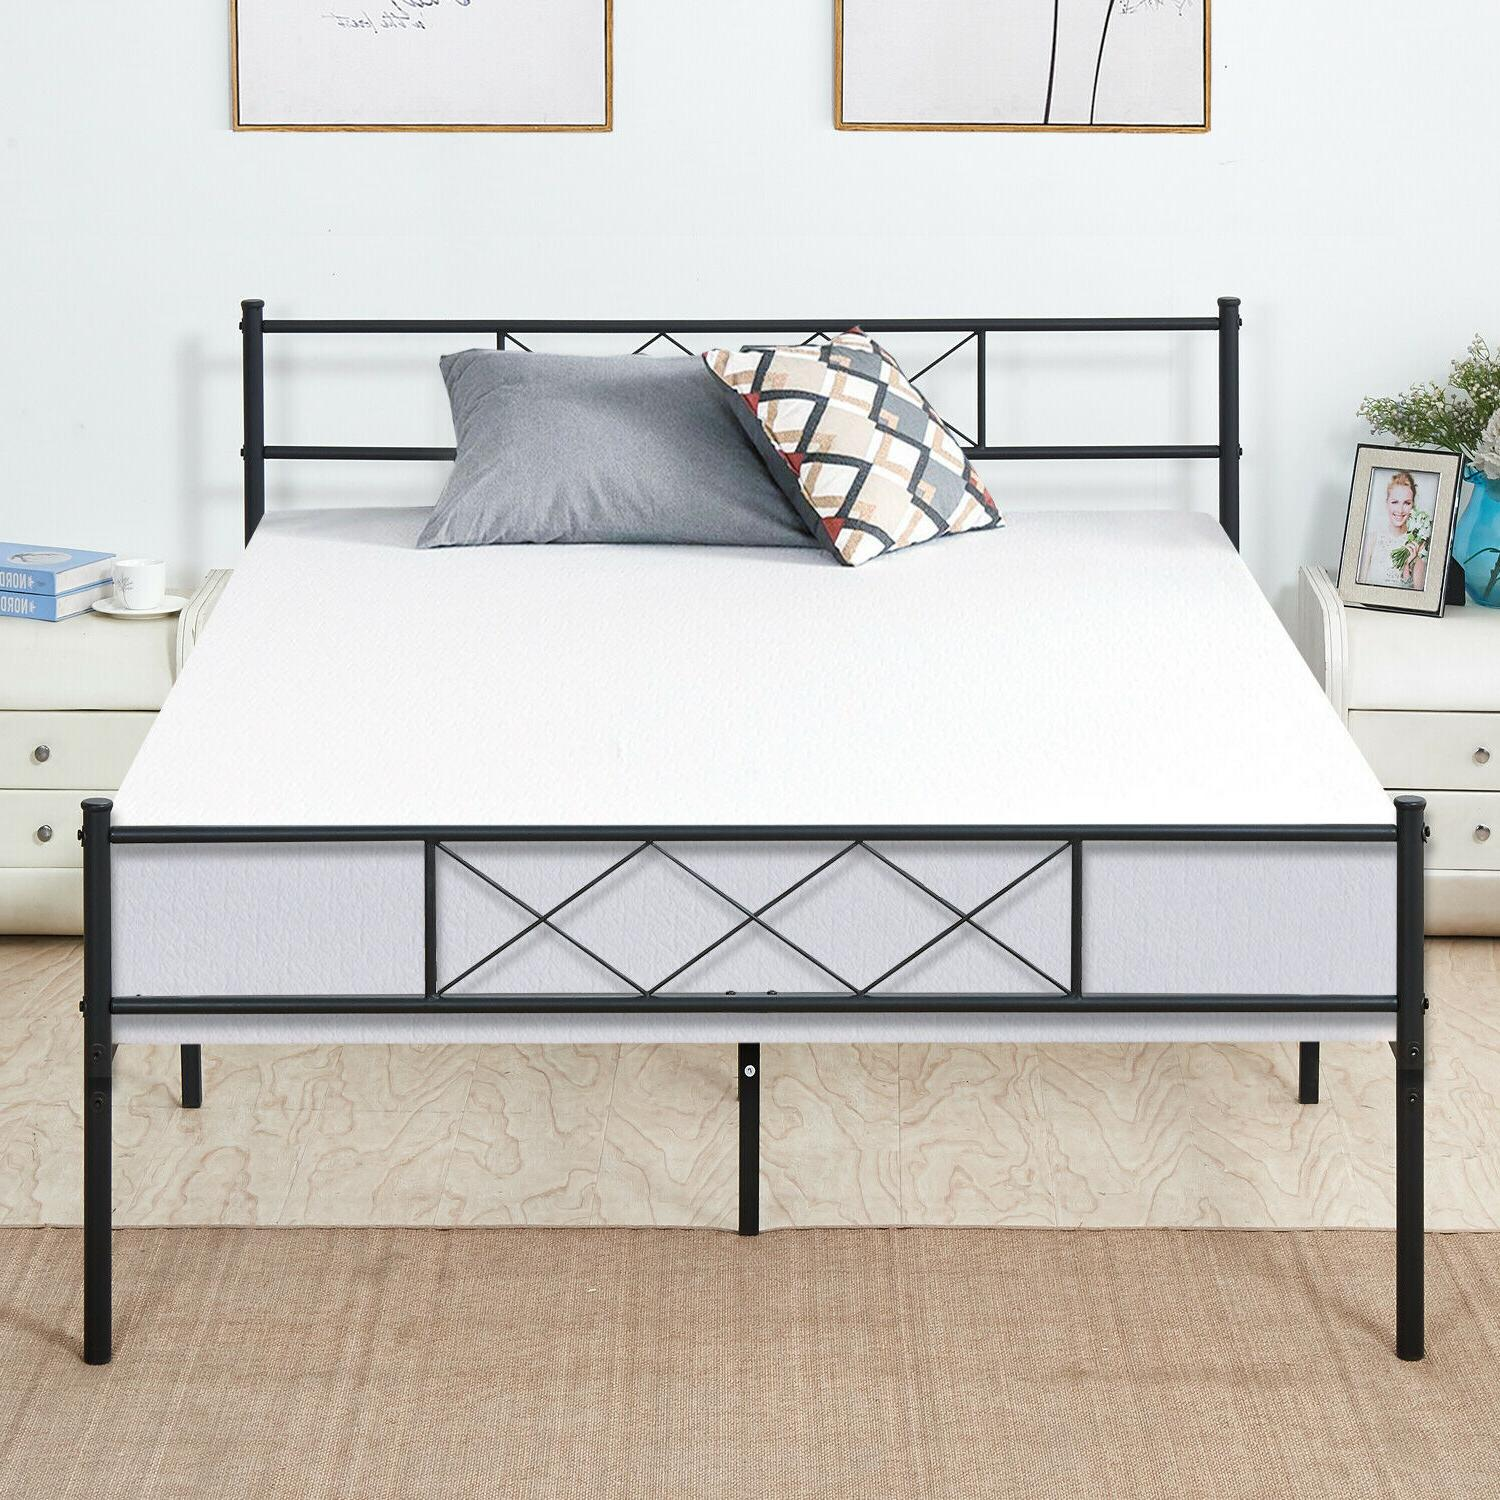 Queen Size Bed Frame With Headboard Metal Footboard Black Pl